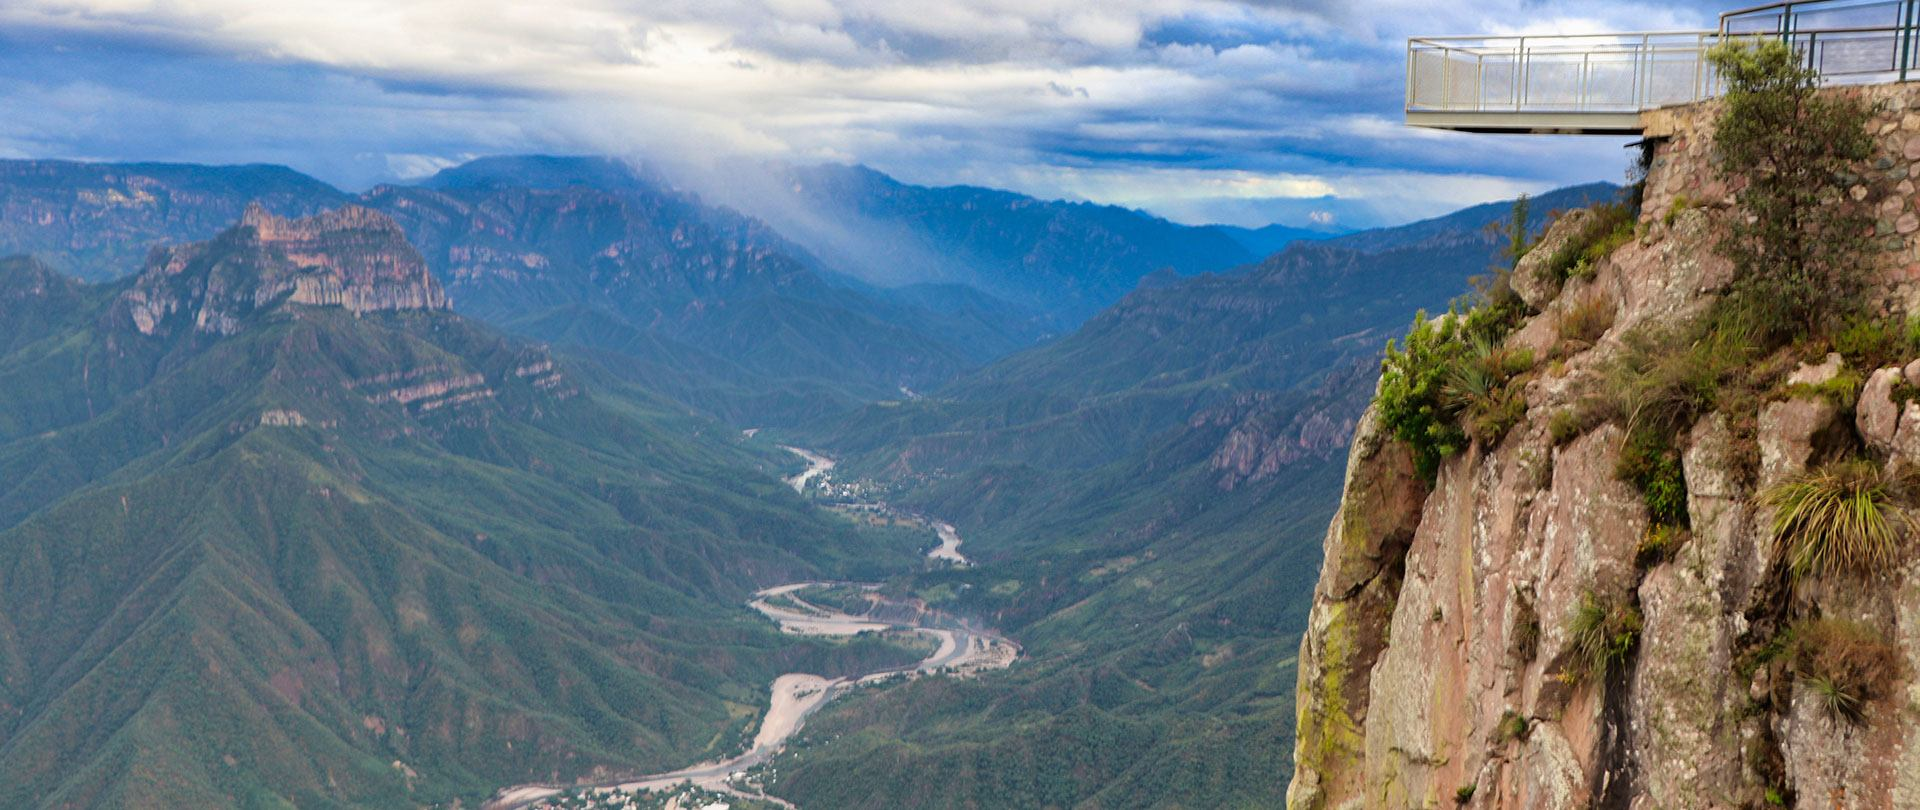 Copper Canyon © 2021 Authentic Travel All Rights Reserved